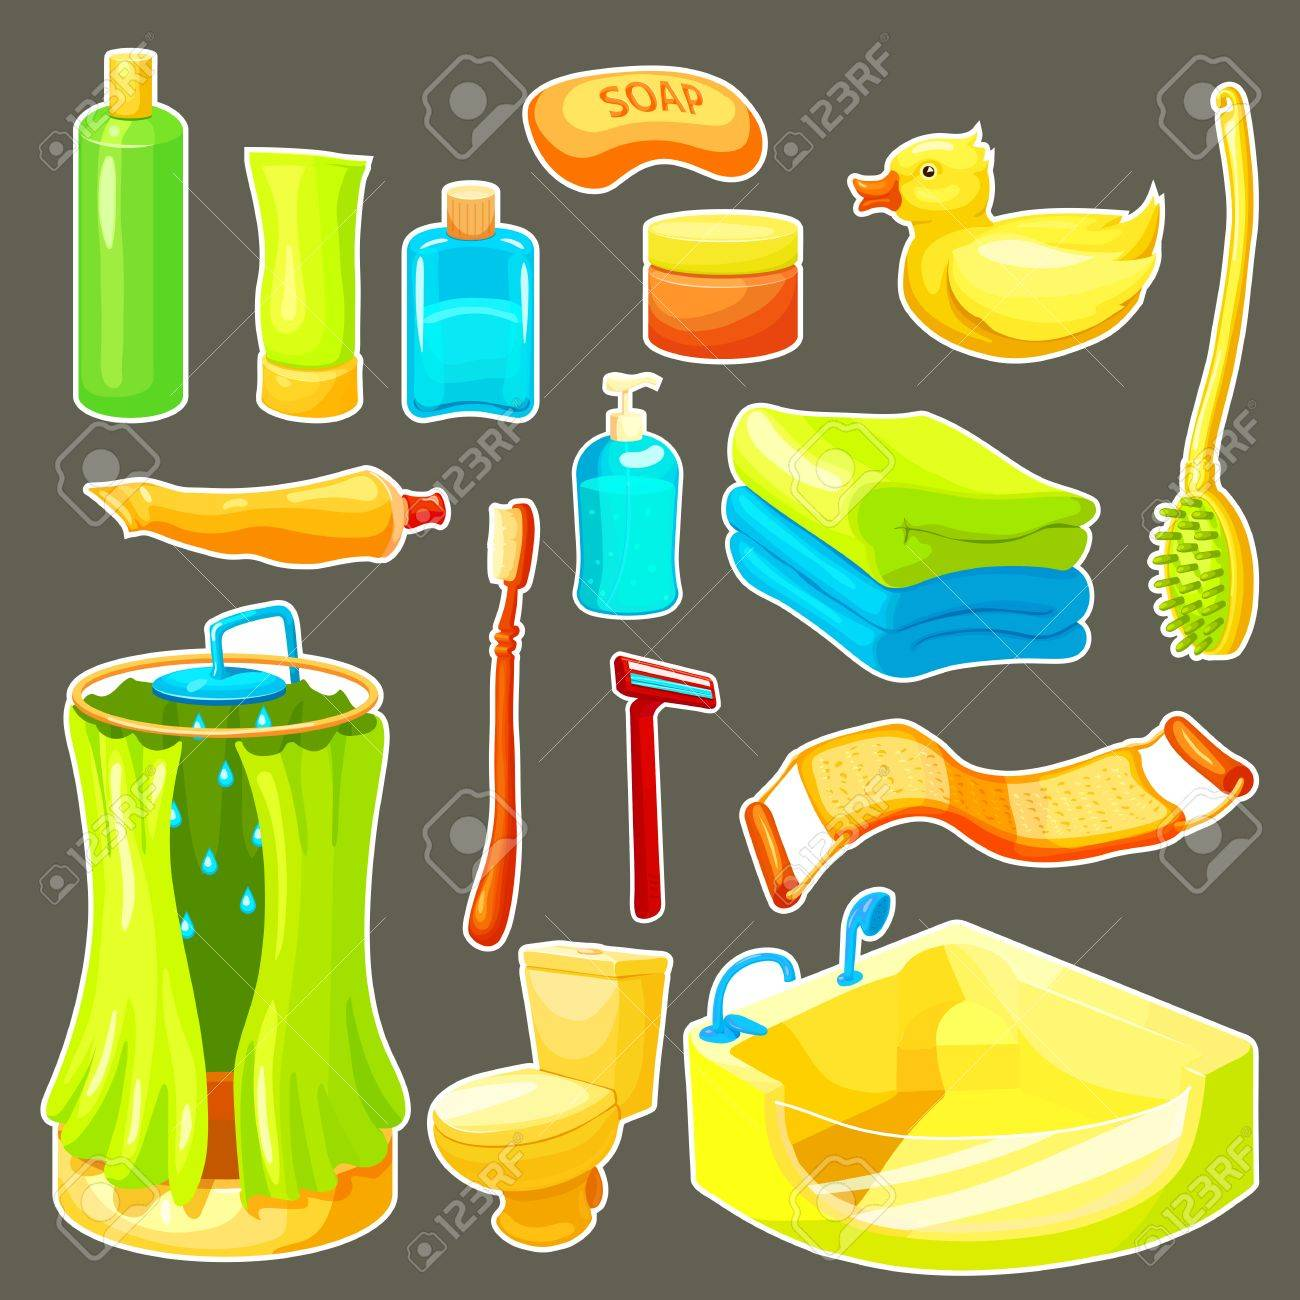 Colored And Isolated Cartoon Bathroom Icon Set Necessary Things For  Showering And Furniture Illustration Stock Vector